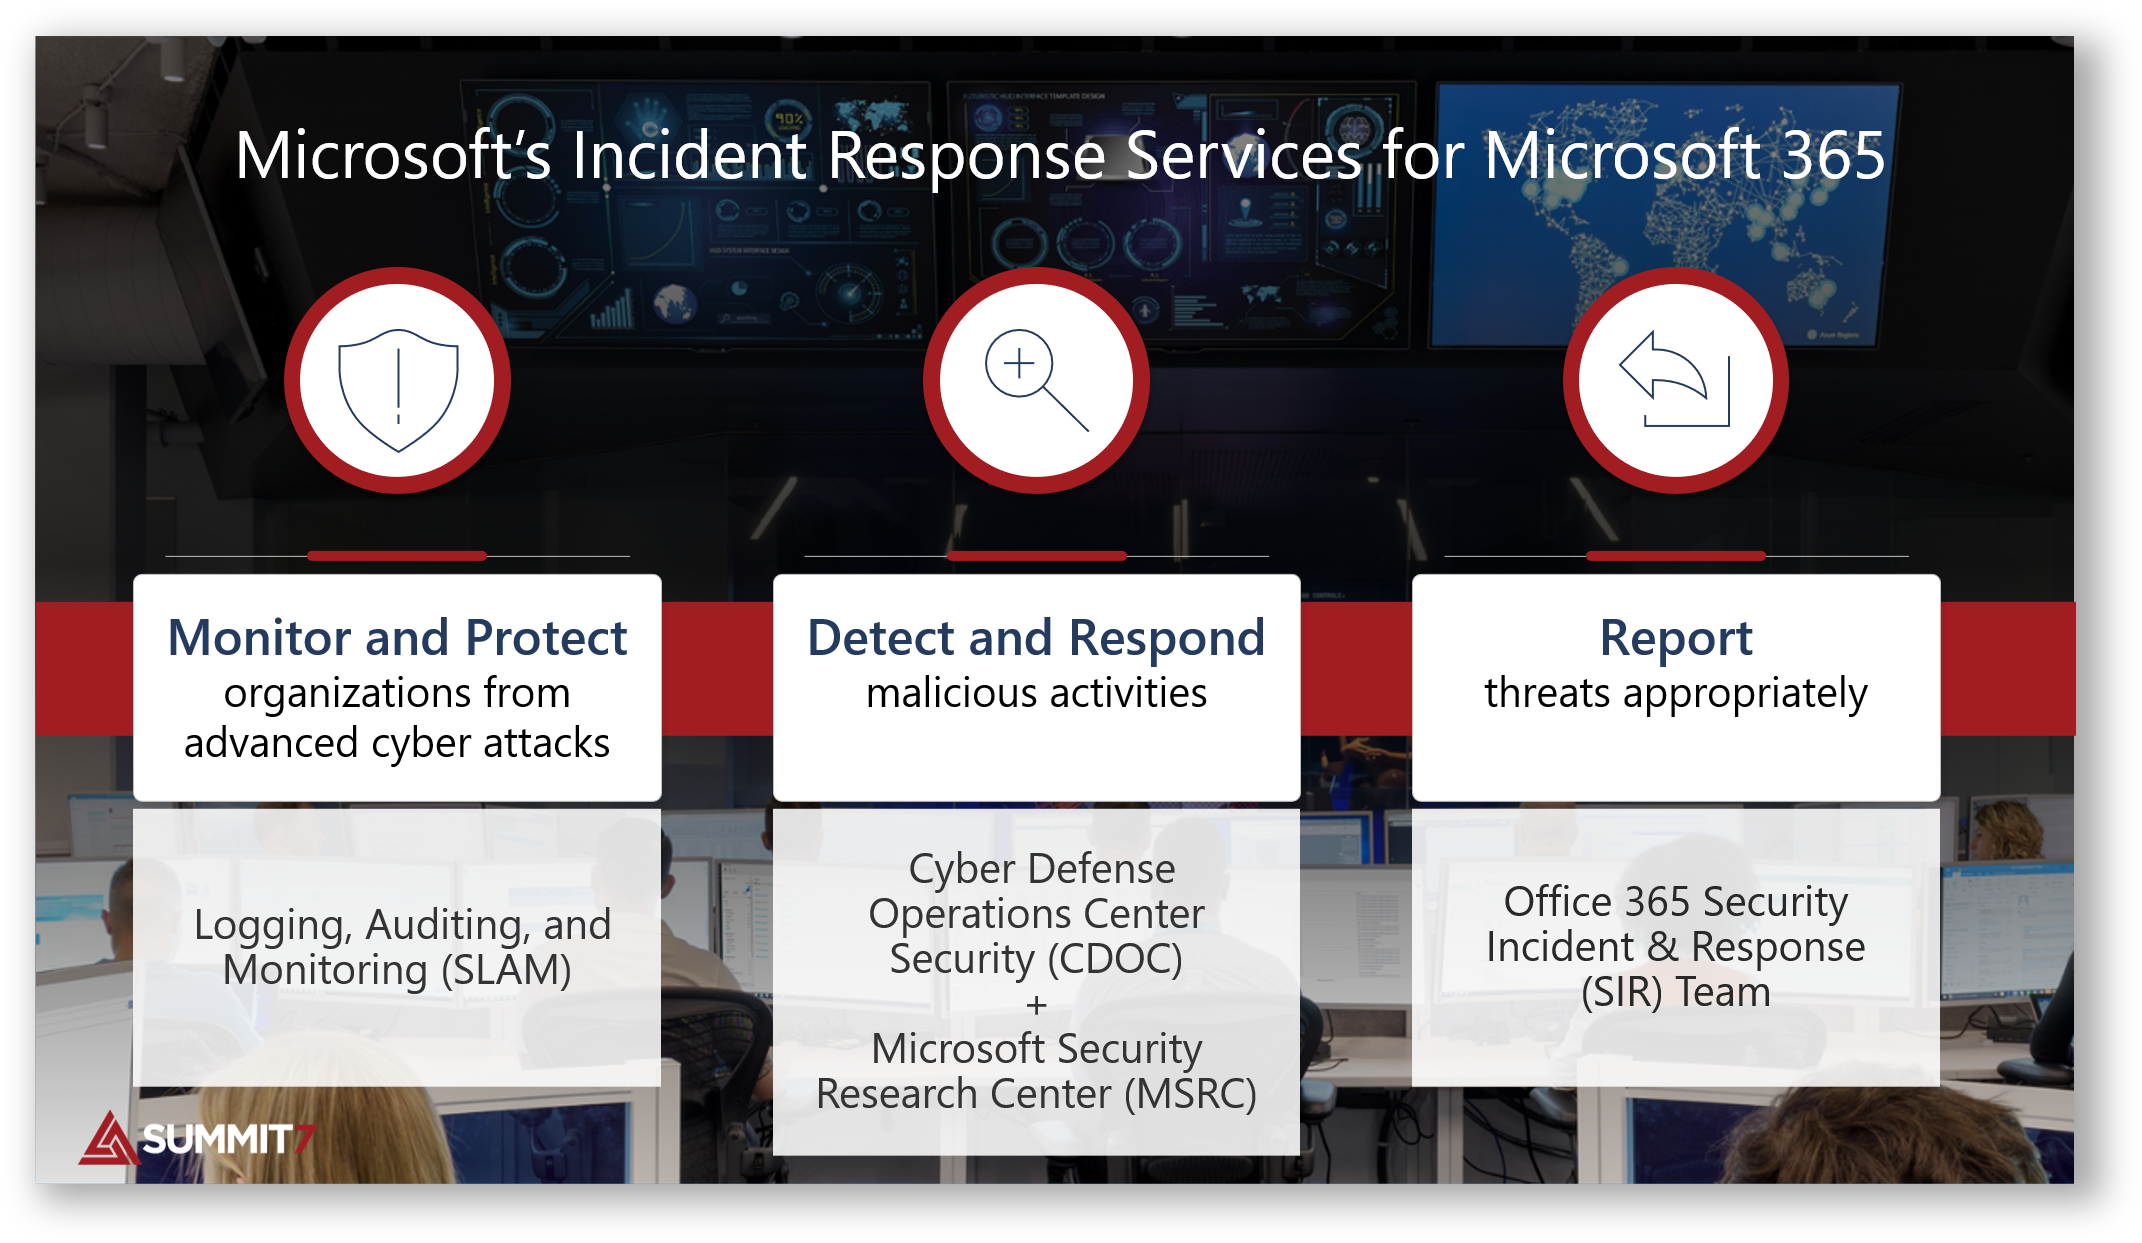 Incident Response Microsoft 365 GCC and GCC High